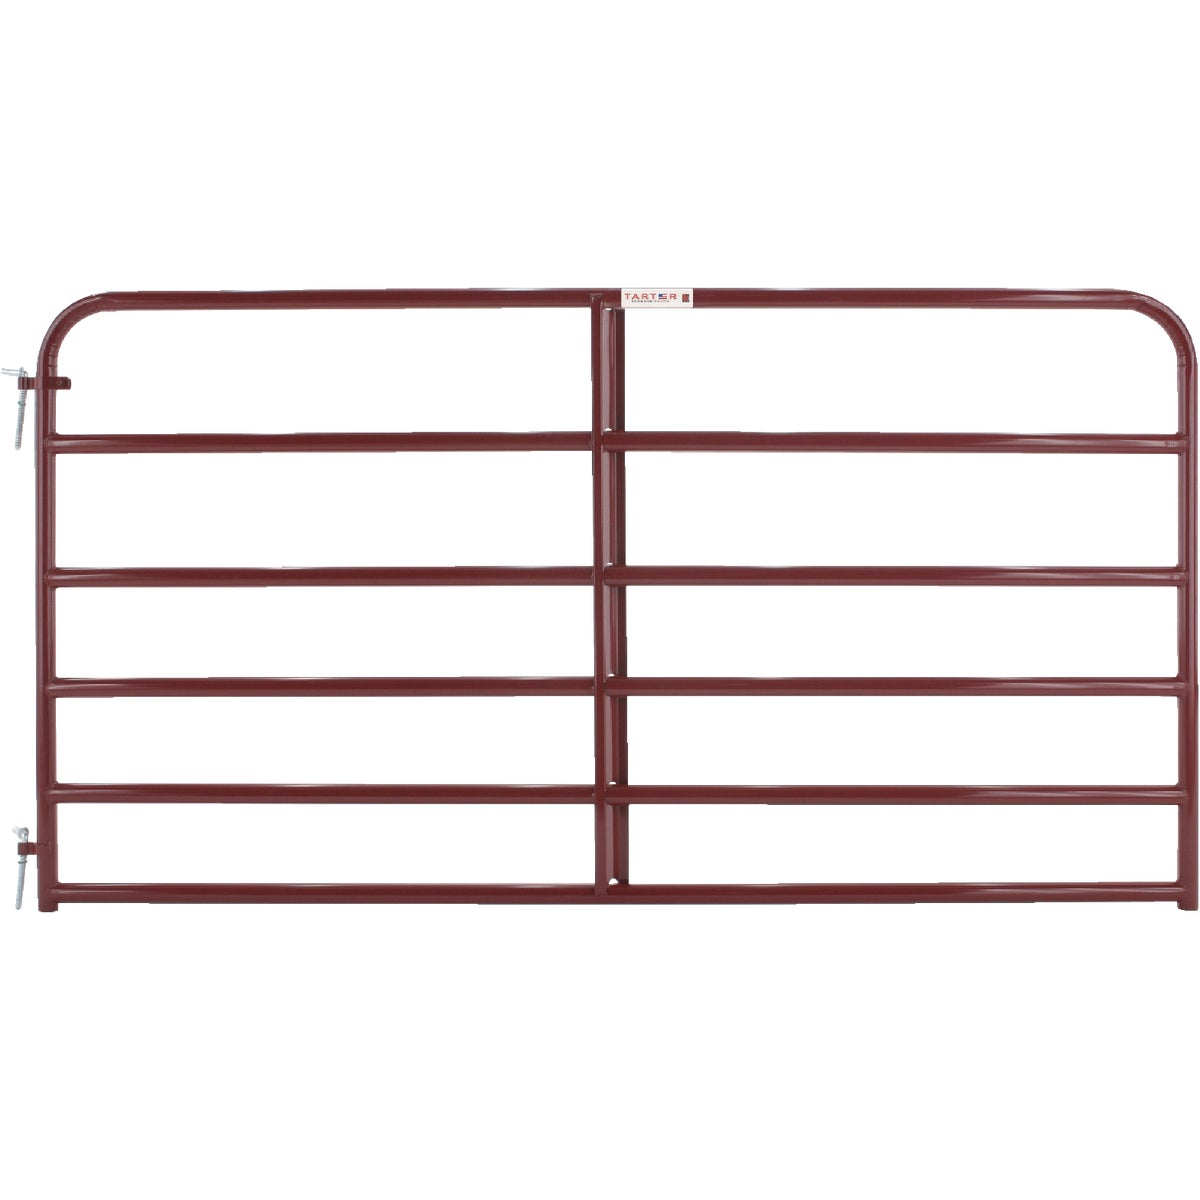 8' 6BAR RED ECONO GATE - 6ER8 by Tarter Llc